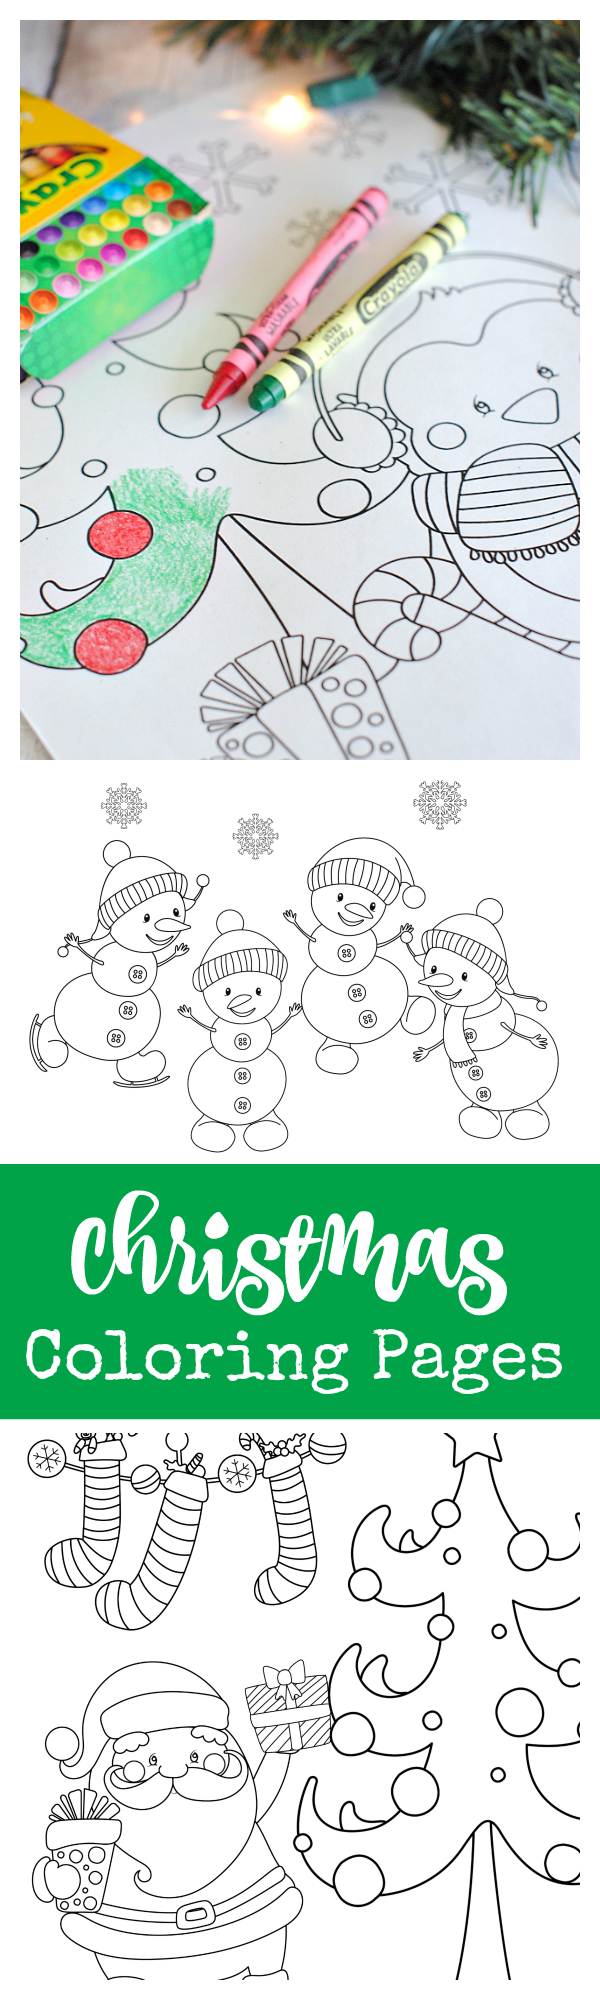 Free coloring pages for christmas printable - Free Printable Christmas Coloring Pages